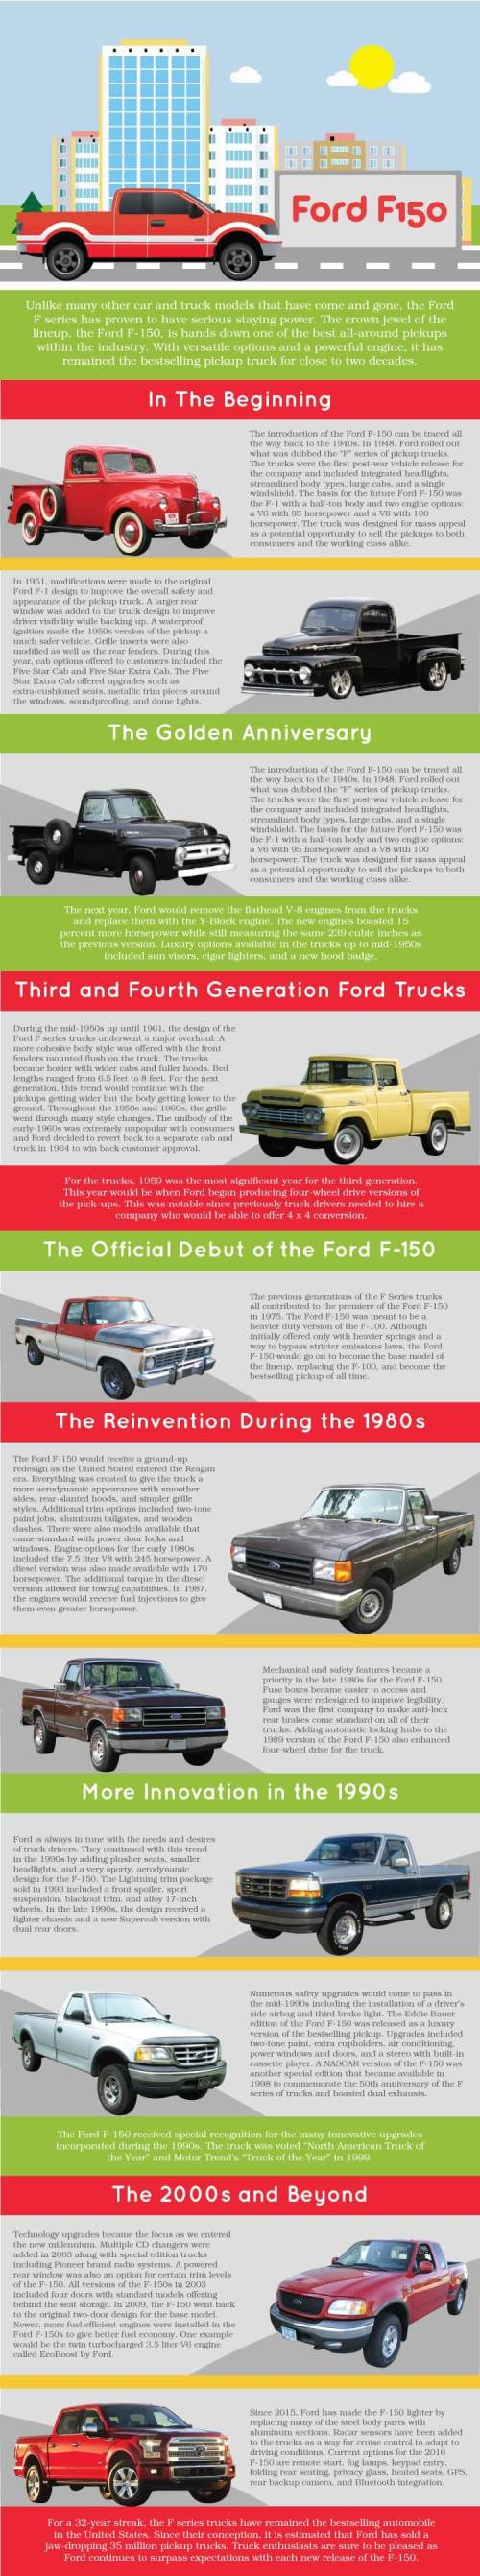 small resolution of history of the ford f150